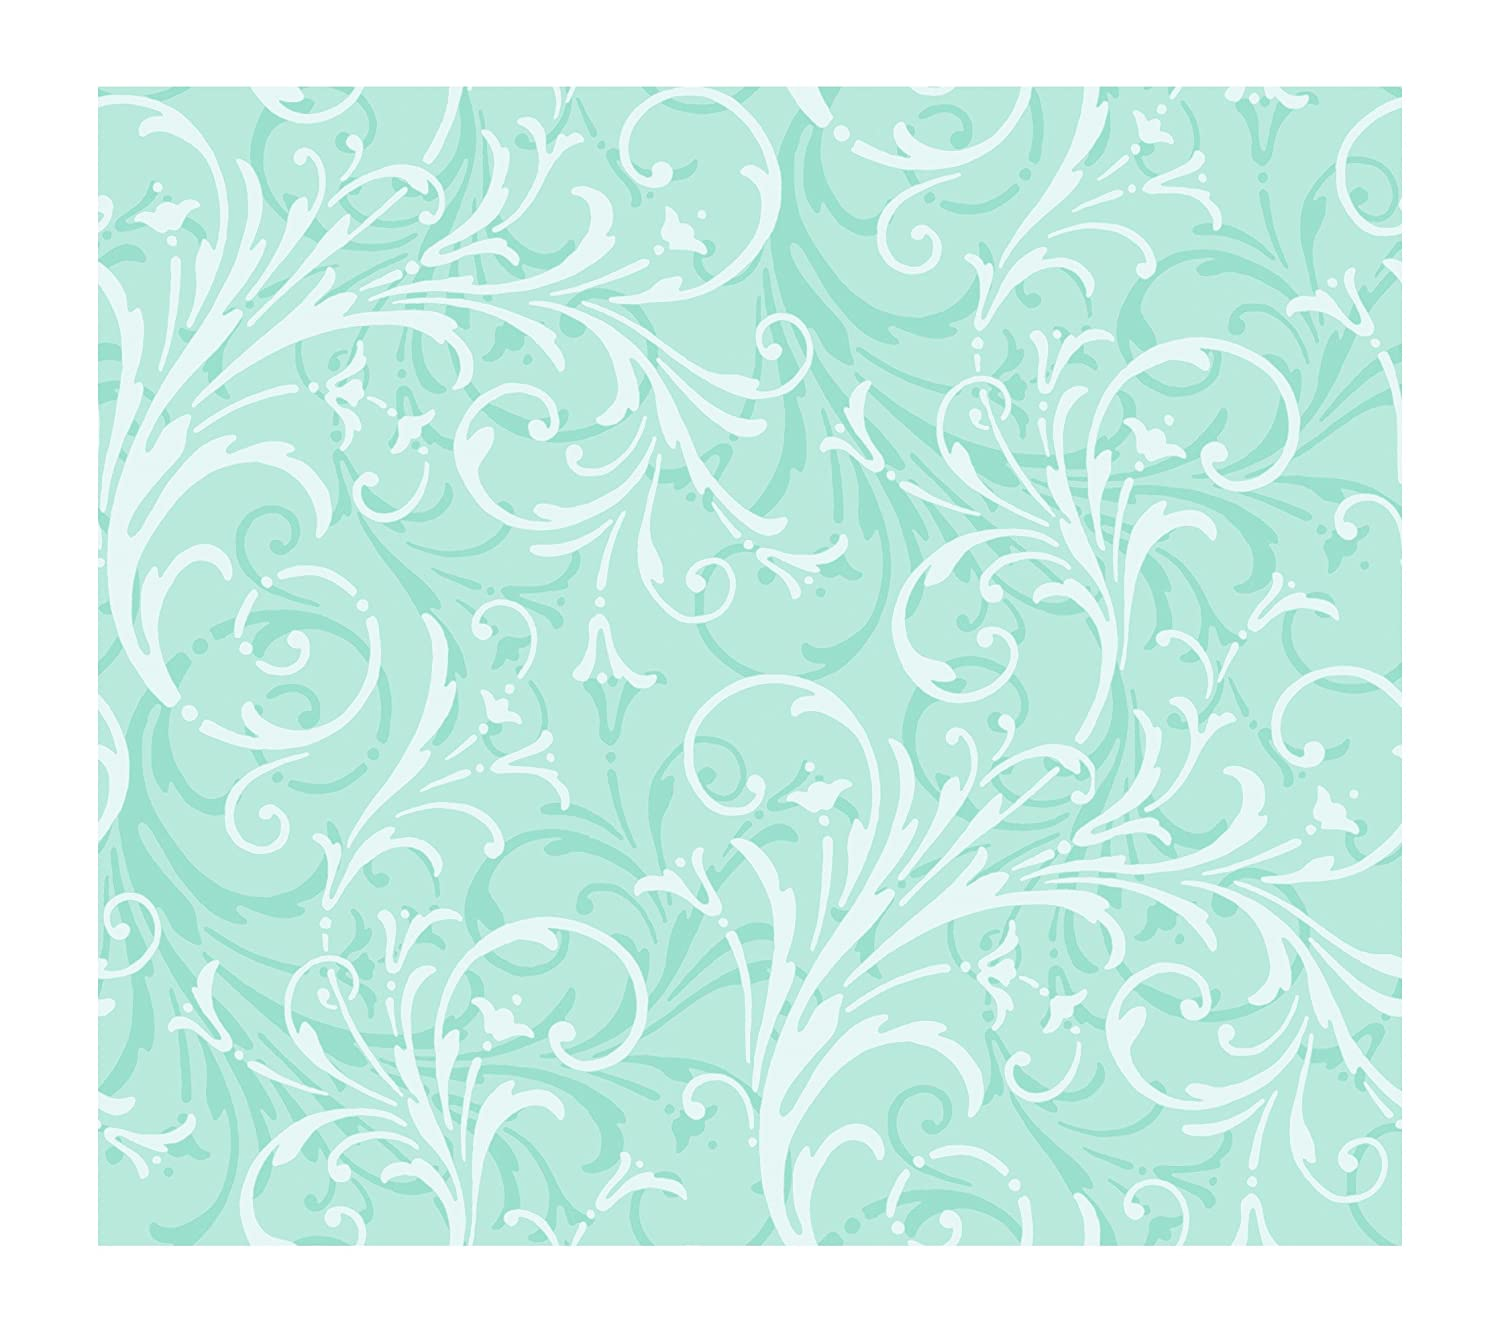 York Wallcoverings Just Kids KD1723 Layered Scroll Wallpaper Mint Green Amazoncouk DIY Tools